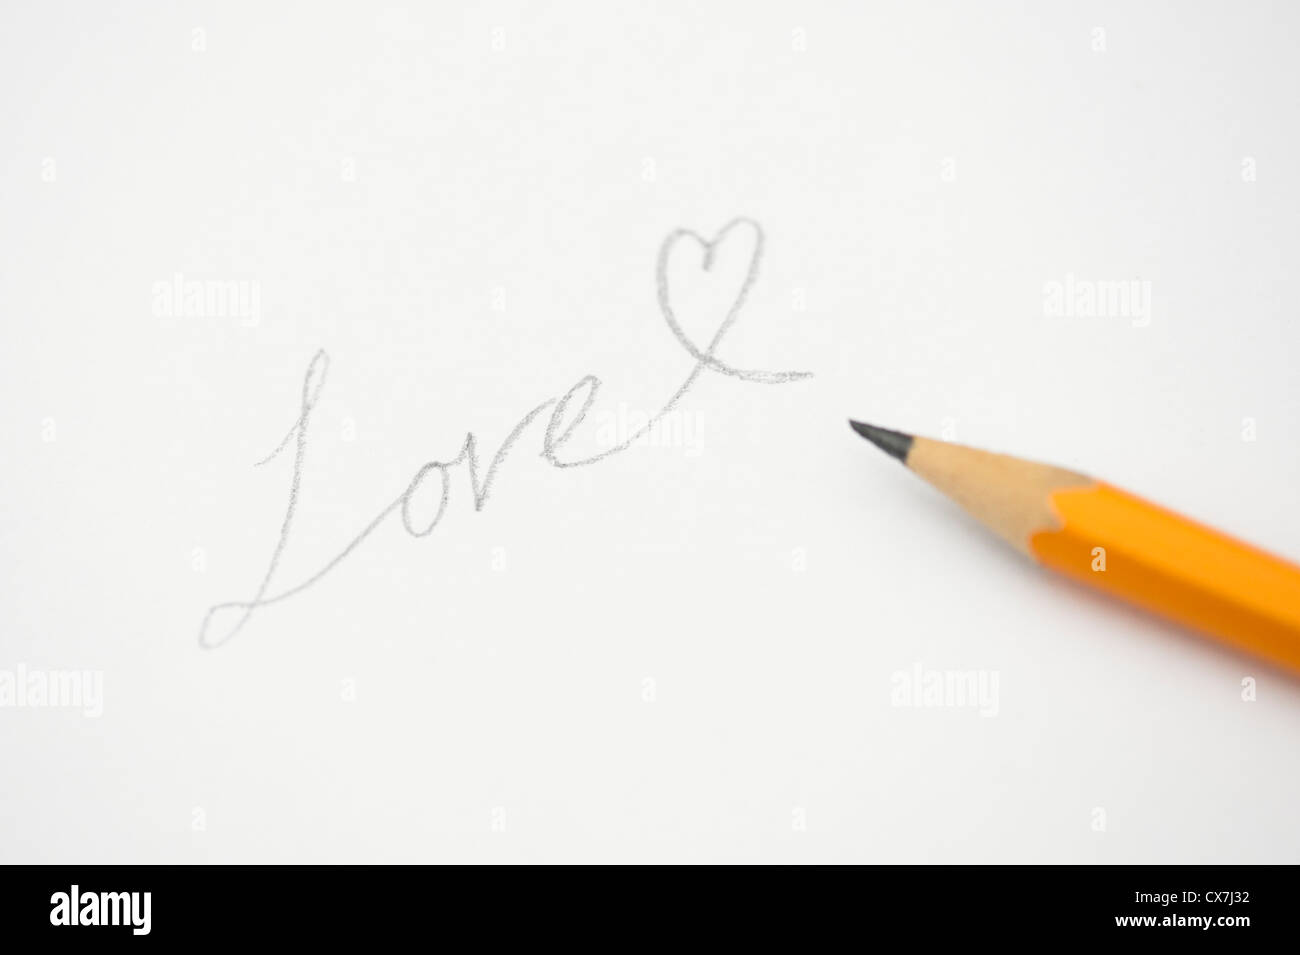 Love heart pencil on white background - Stock Image